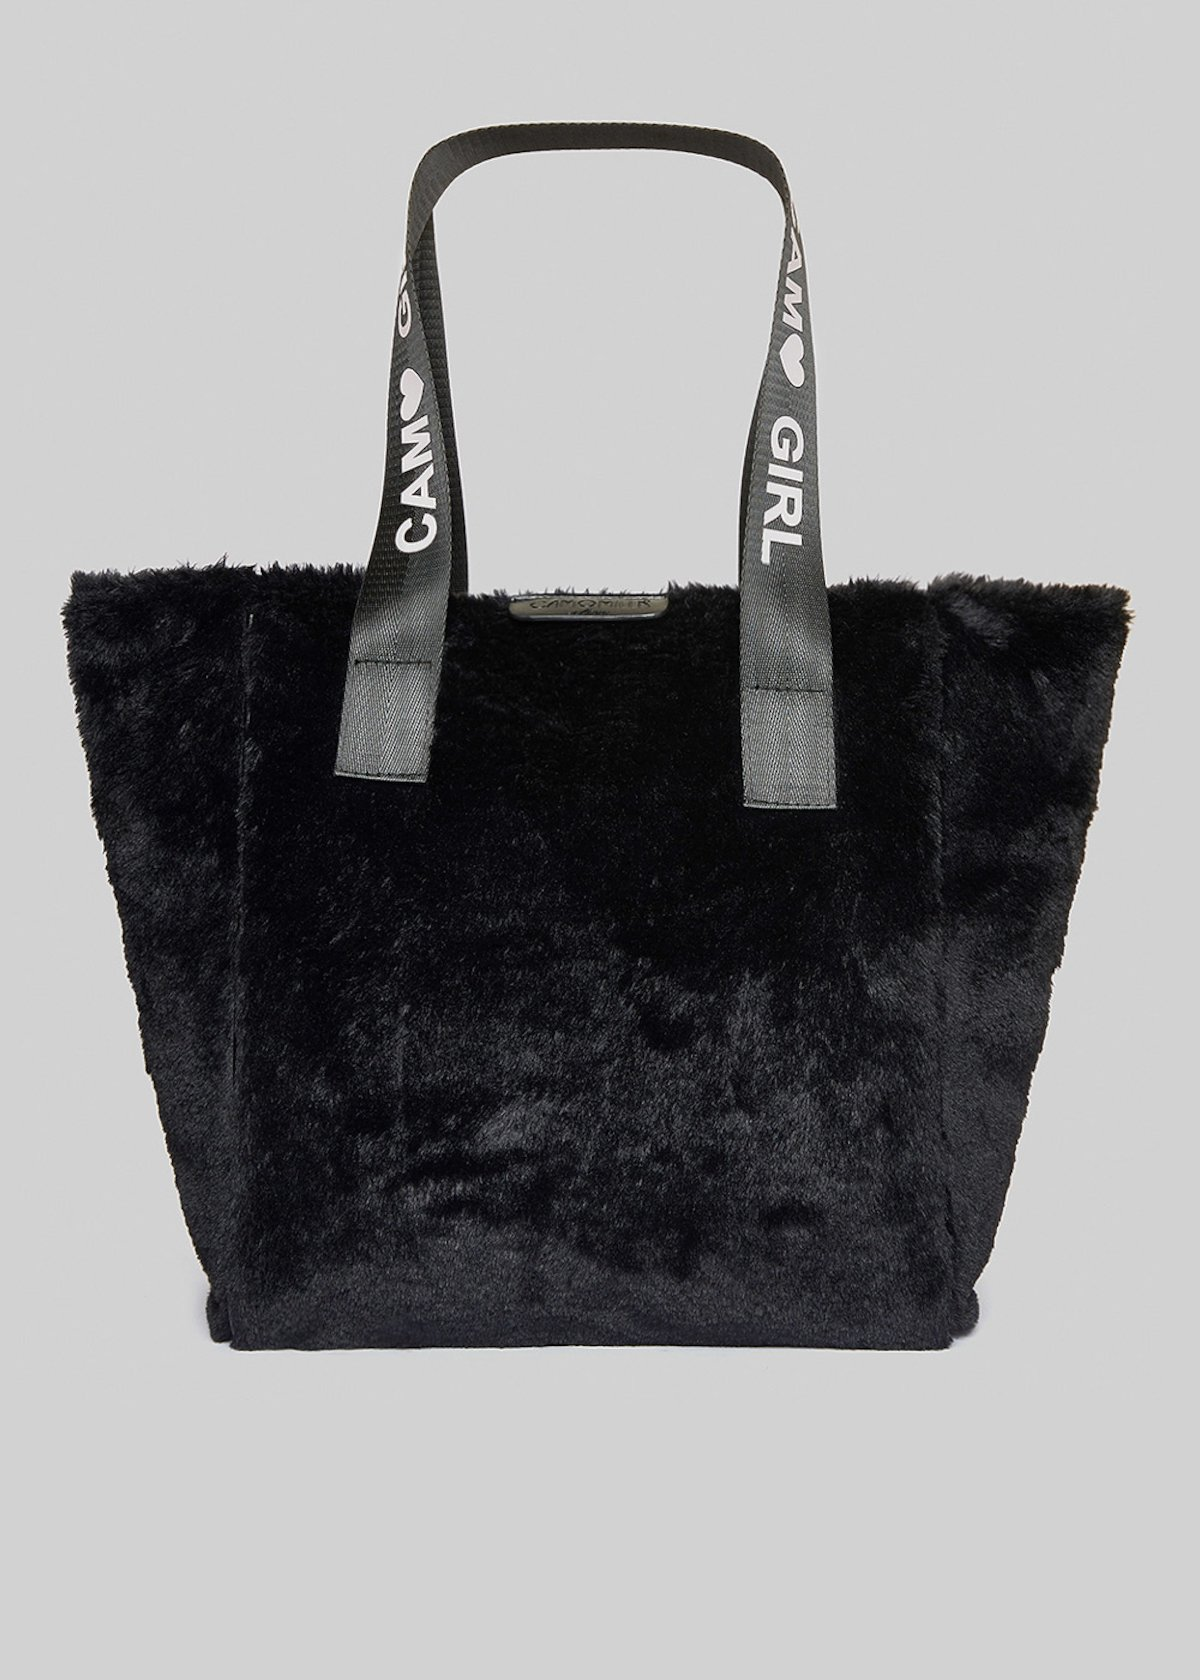 Fake fur Boris shopping bag with printed logo - Black